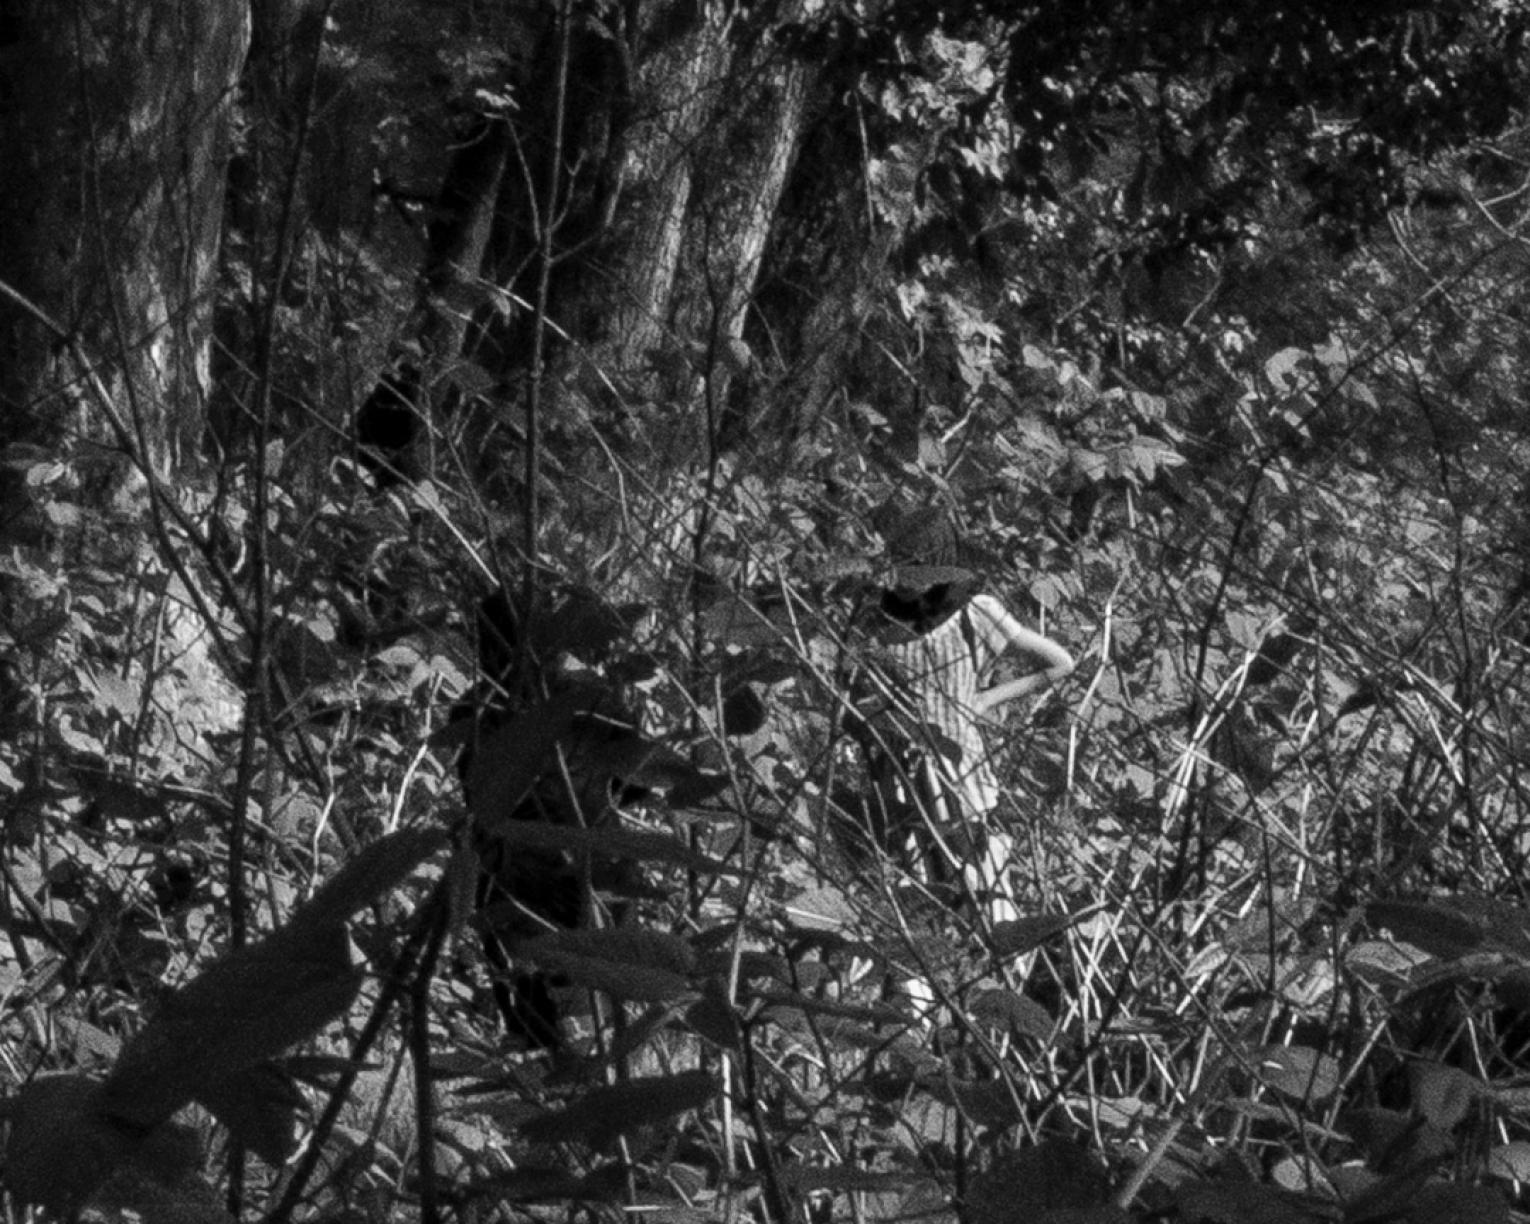 Black and white photo of a woman standing amidst foliage